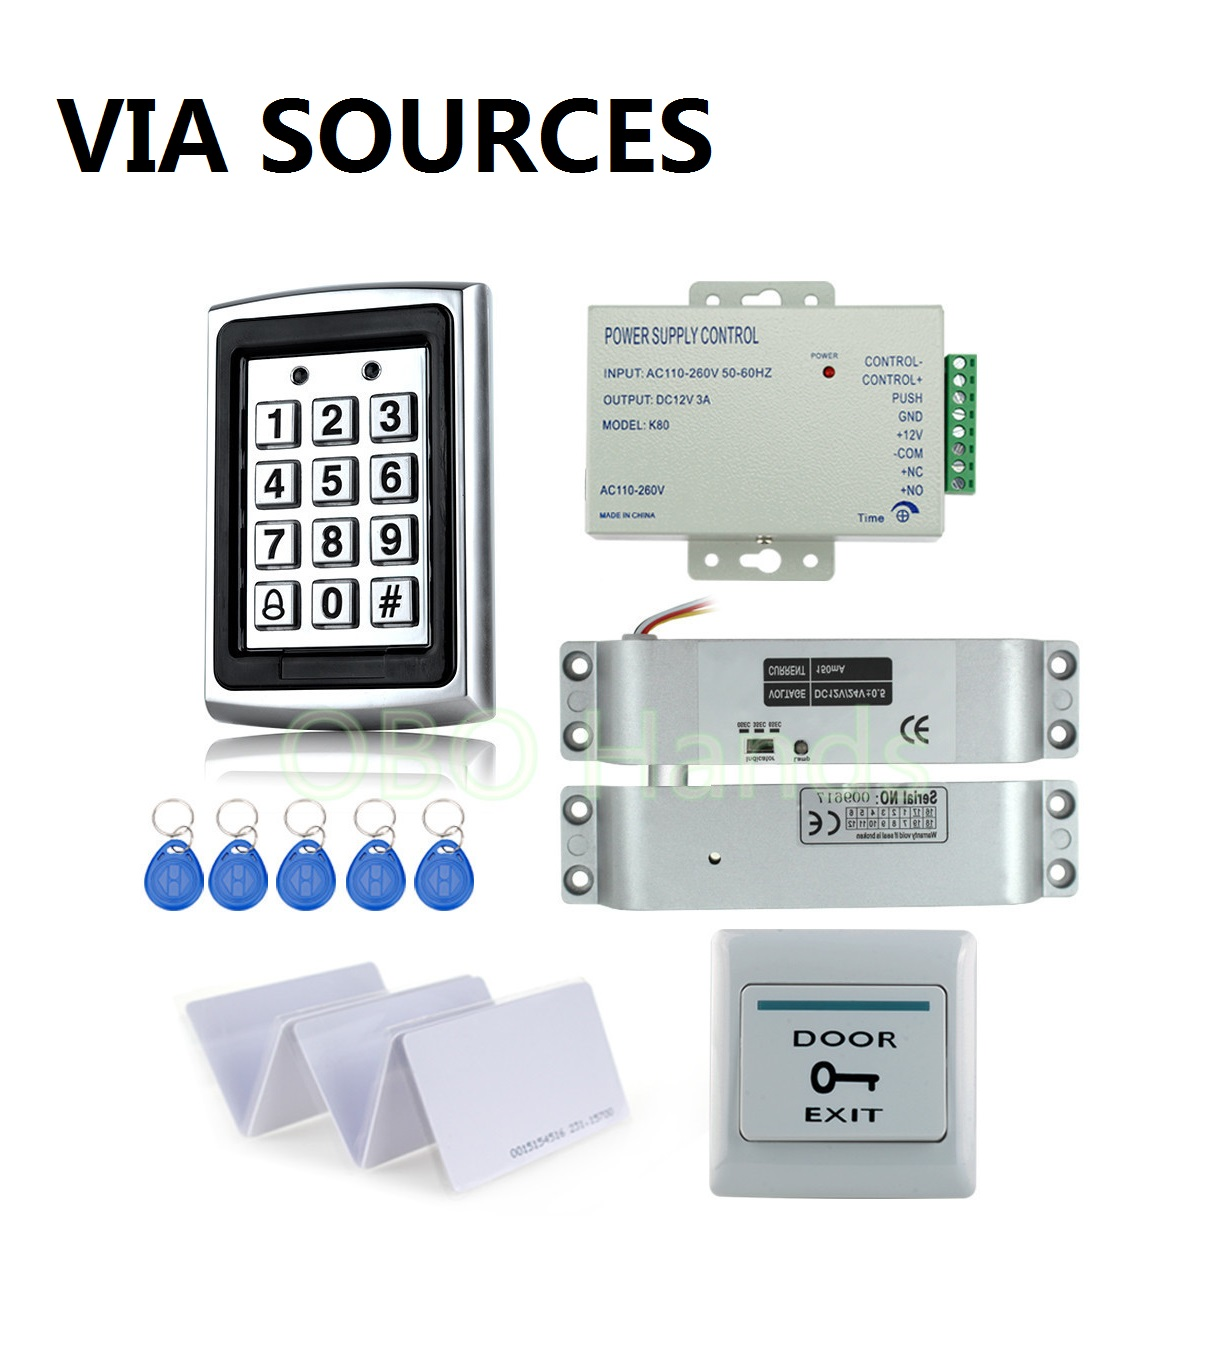 Direct Factory with Electric Bolt Lock+Keypad+Power supply+Exit switch+Keys Door Access Control System Kit Full SetDirect Factory with Electric Bolt Lock+Keypad+Power supply+Exit switch+Keys Door Access Control System Kit Full Set